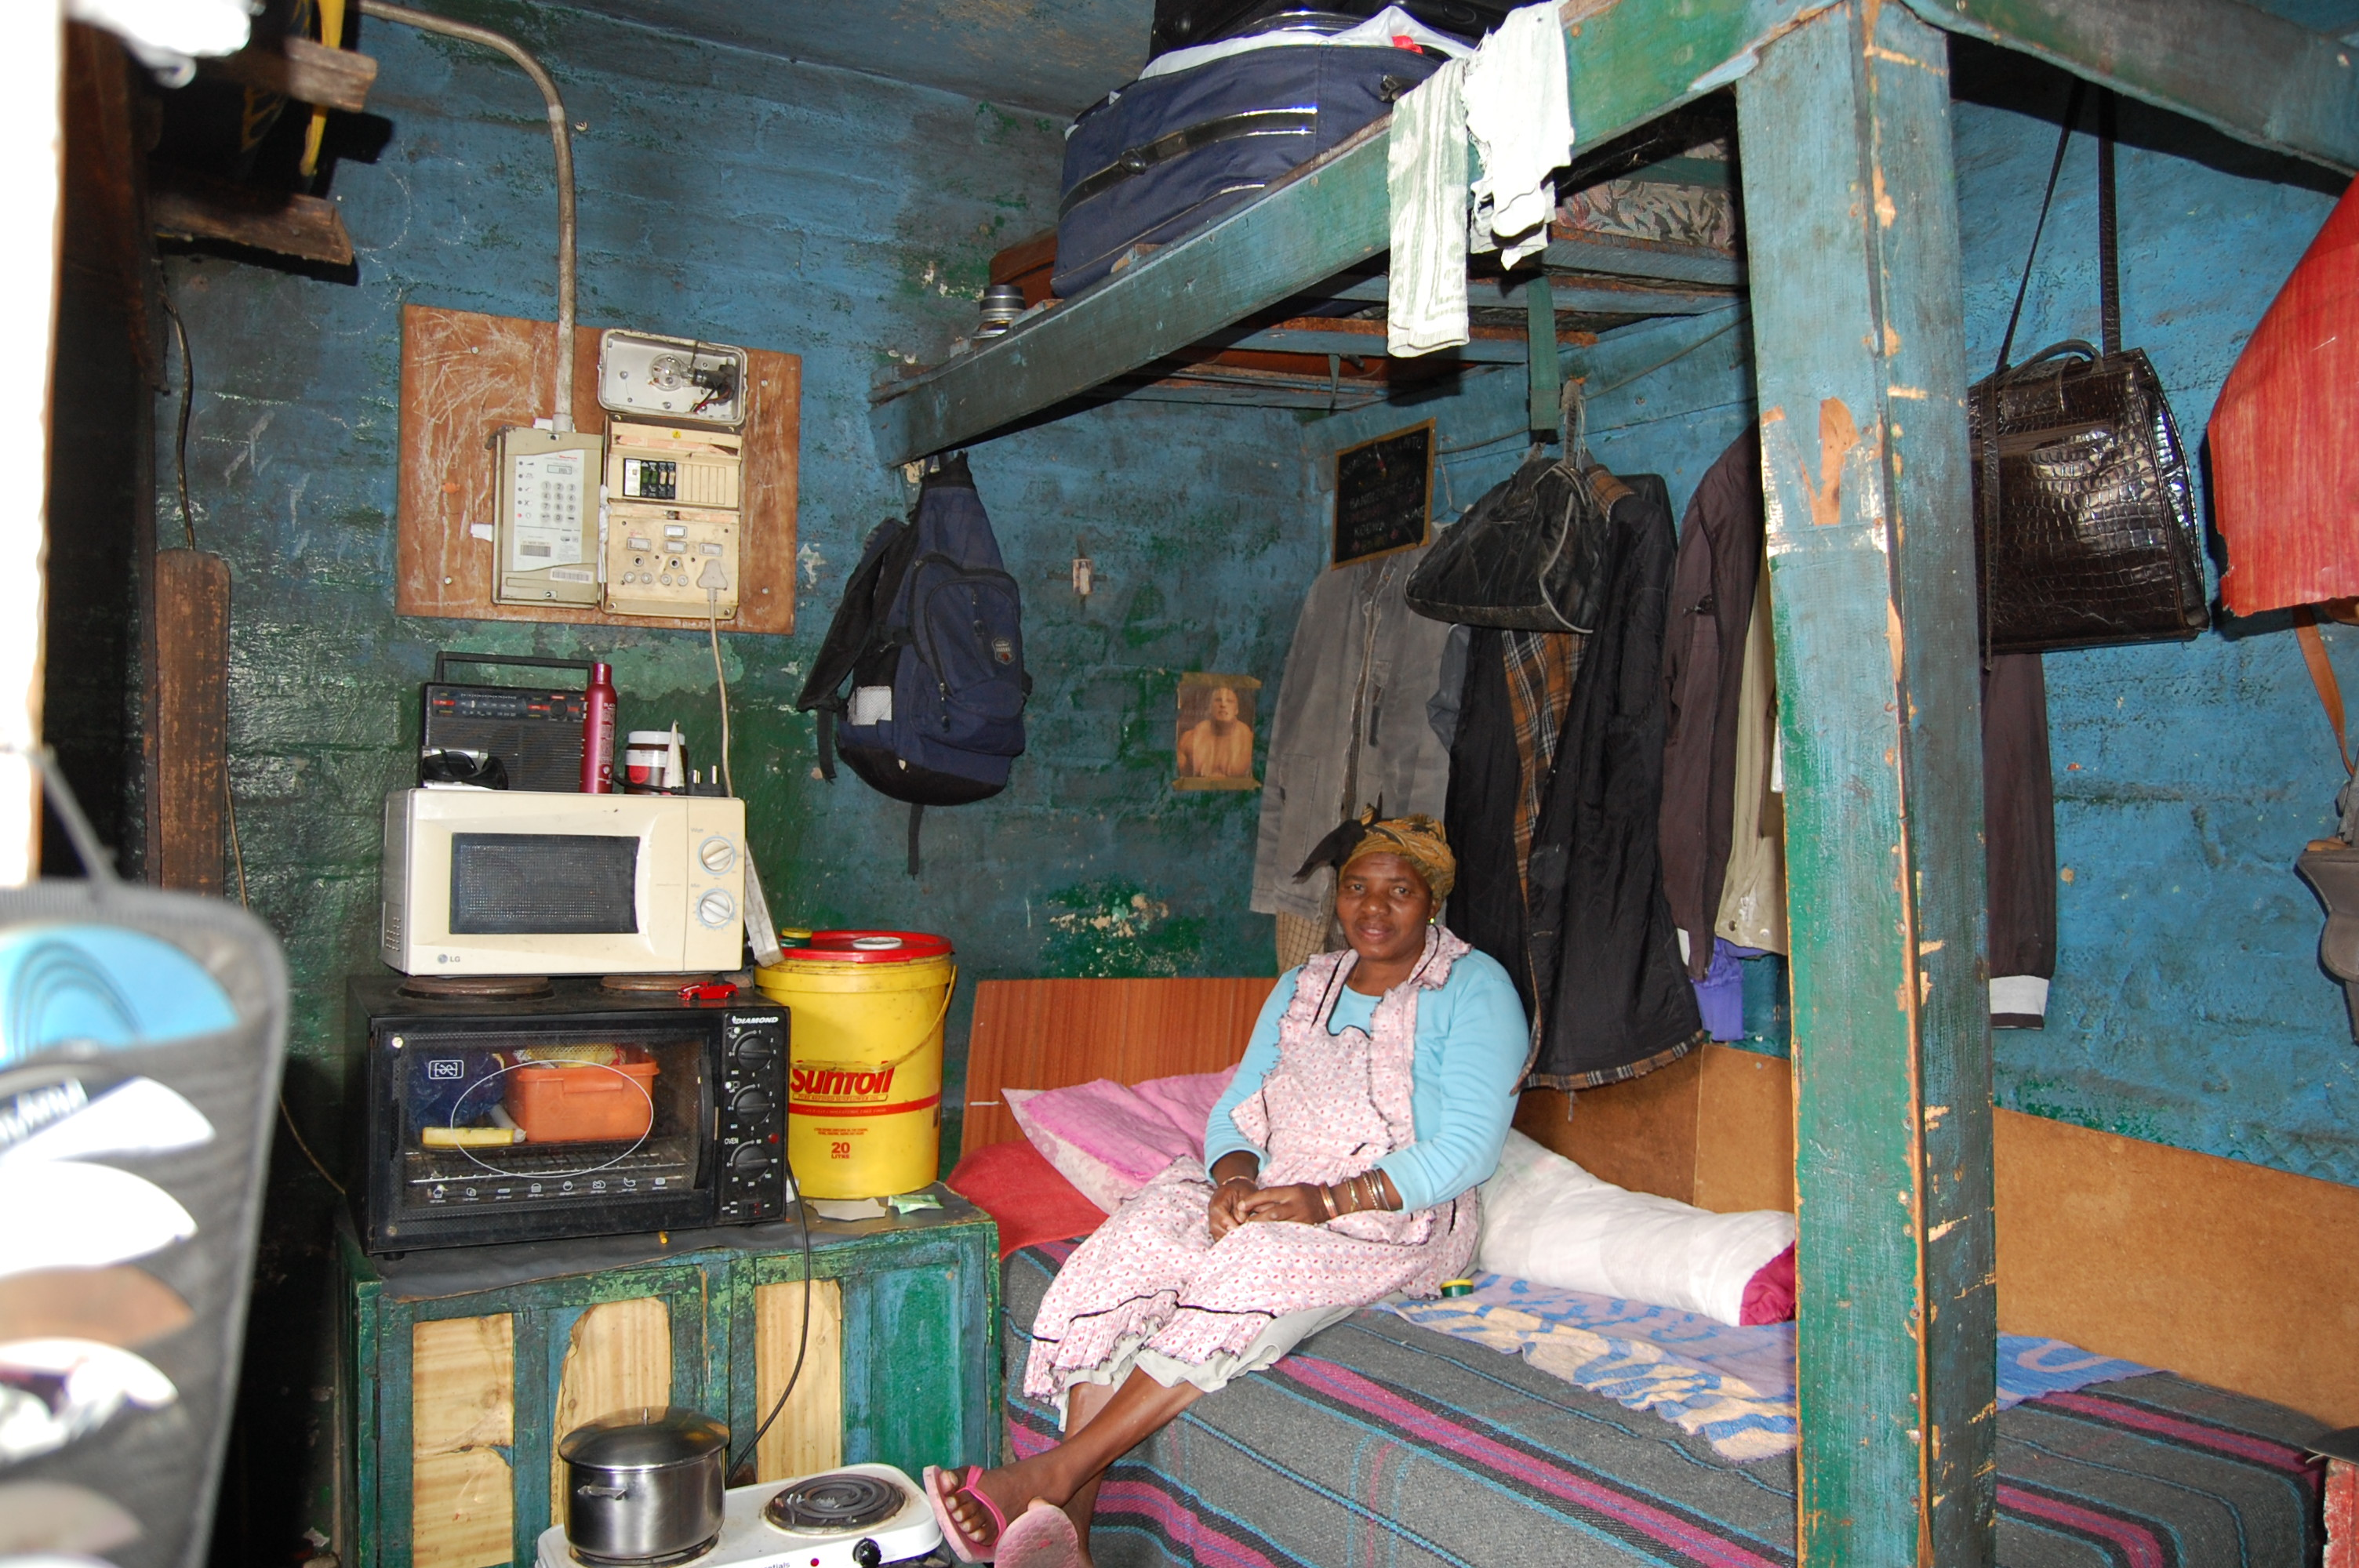 One of three beds in a bedroom in a township. One bed is meant for one family of six people. Three people sleep on this bed, the man, his wife and the youngest child. The other children sleep on the floor of the bedroom and the common room.